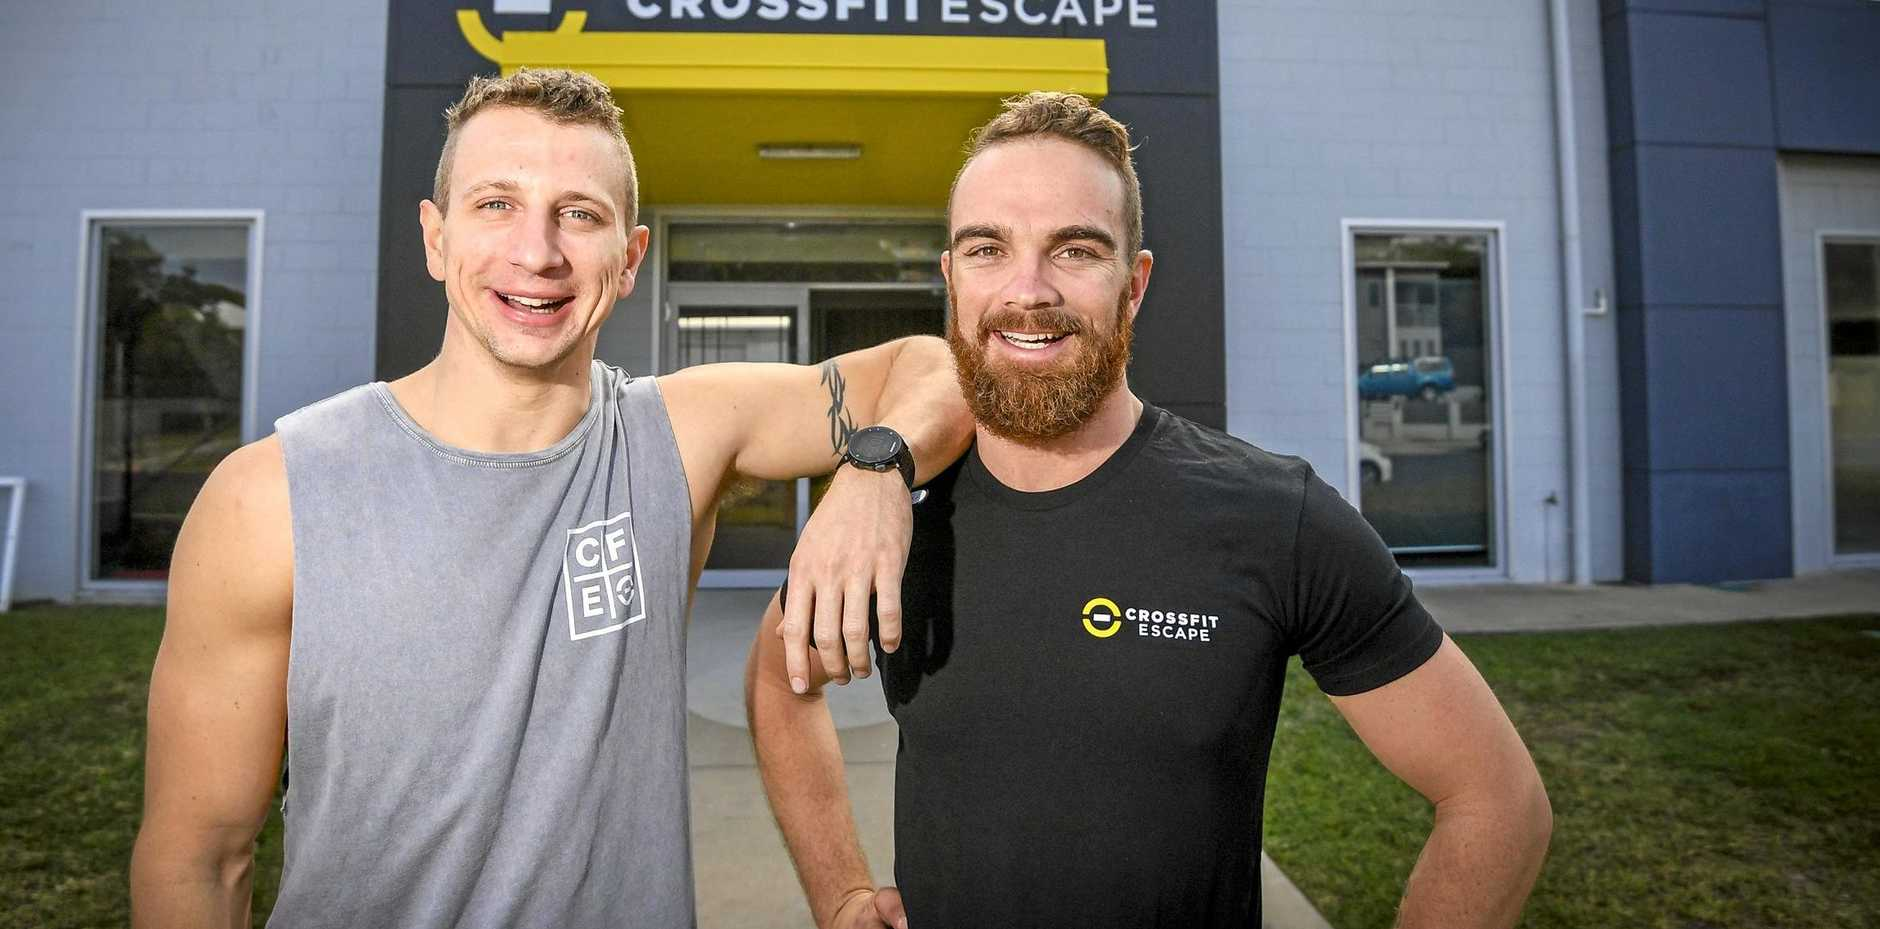 HIGH STANDARDS: Troy Robinson and Travis Williams are the new owners of Cross Fit gym CrossFit Escape, on Side St in West Gladstone.